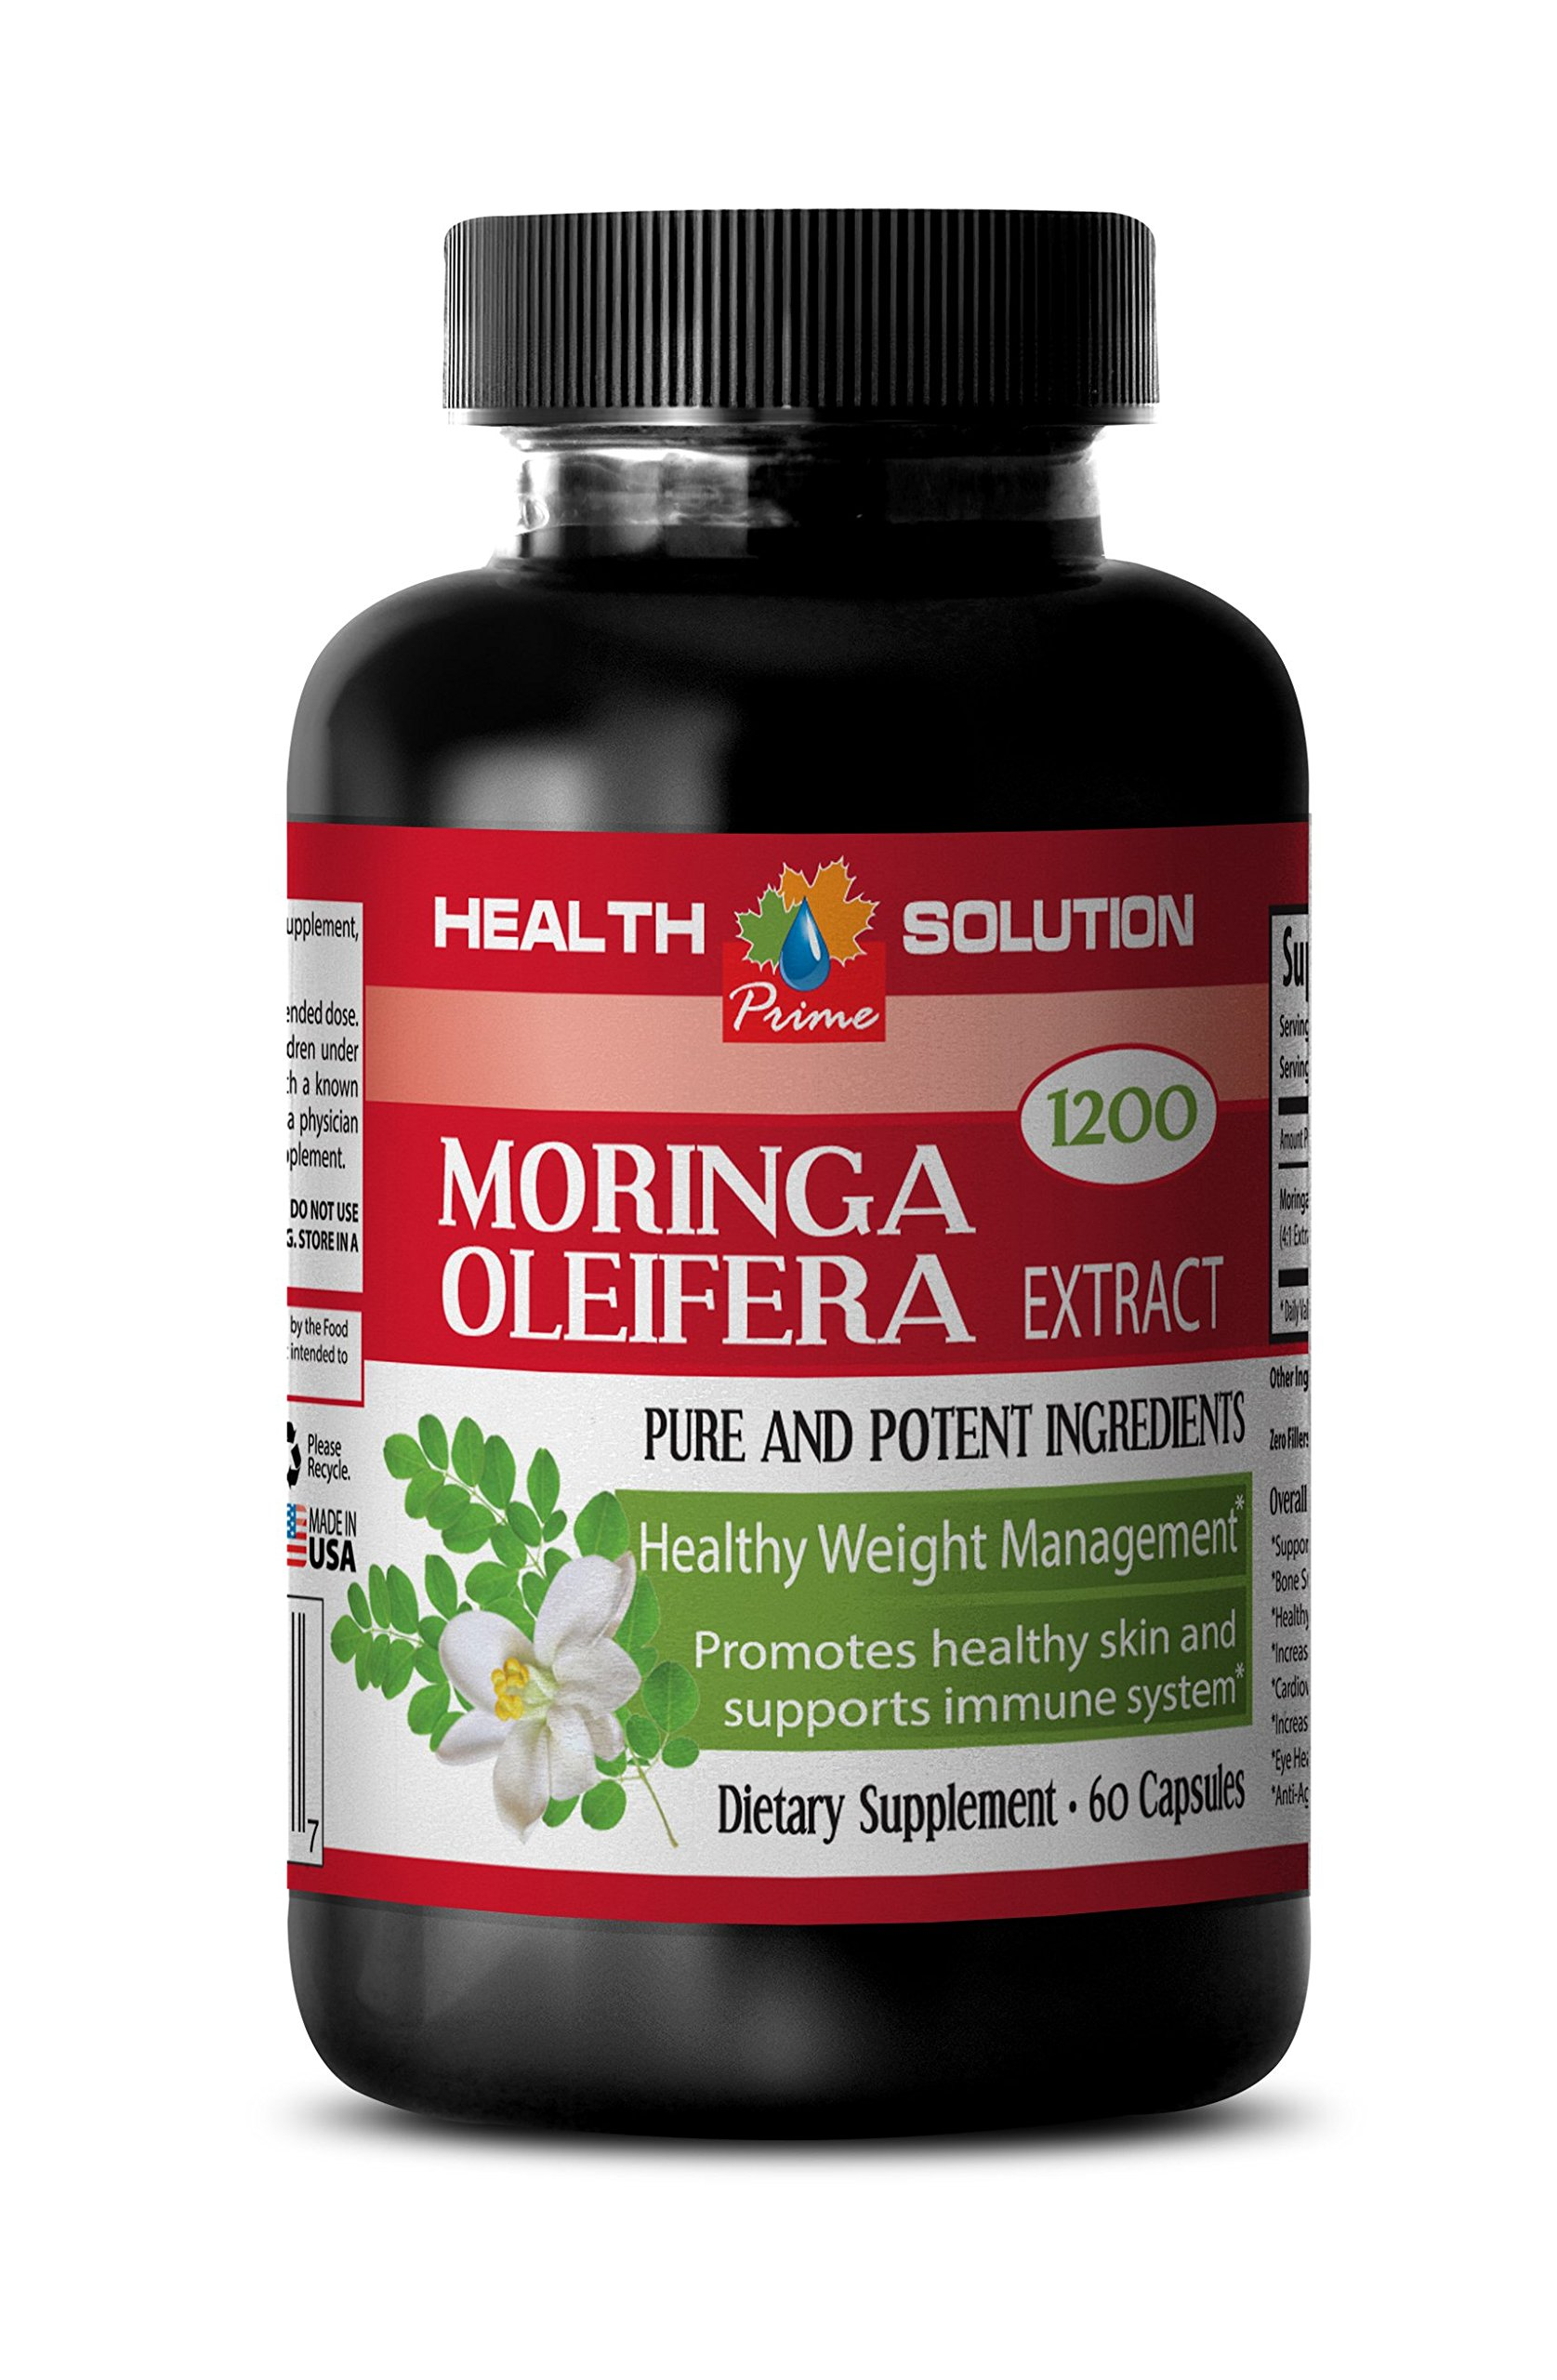 Moringa Organic Powder - MORINGA OLEIFERA EXTRACT 1200 - Pure Skin Clarifying Dietary Supplement 3 Bottles, 180 Capsules by Health Solution Prime (Image #3)